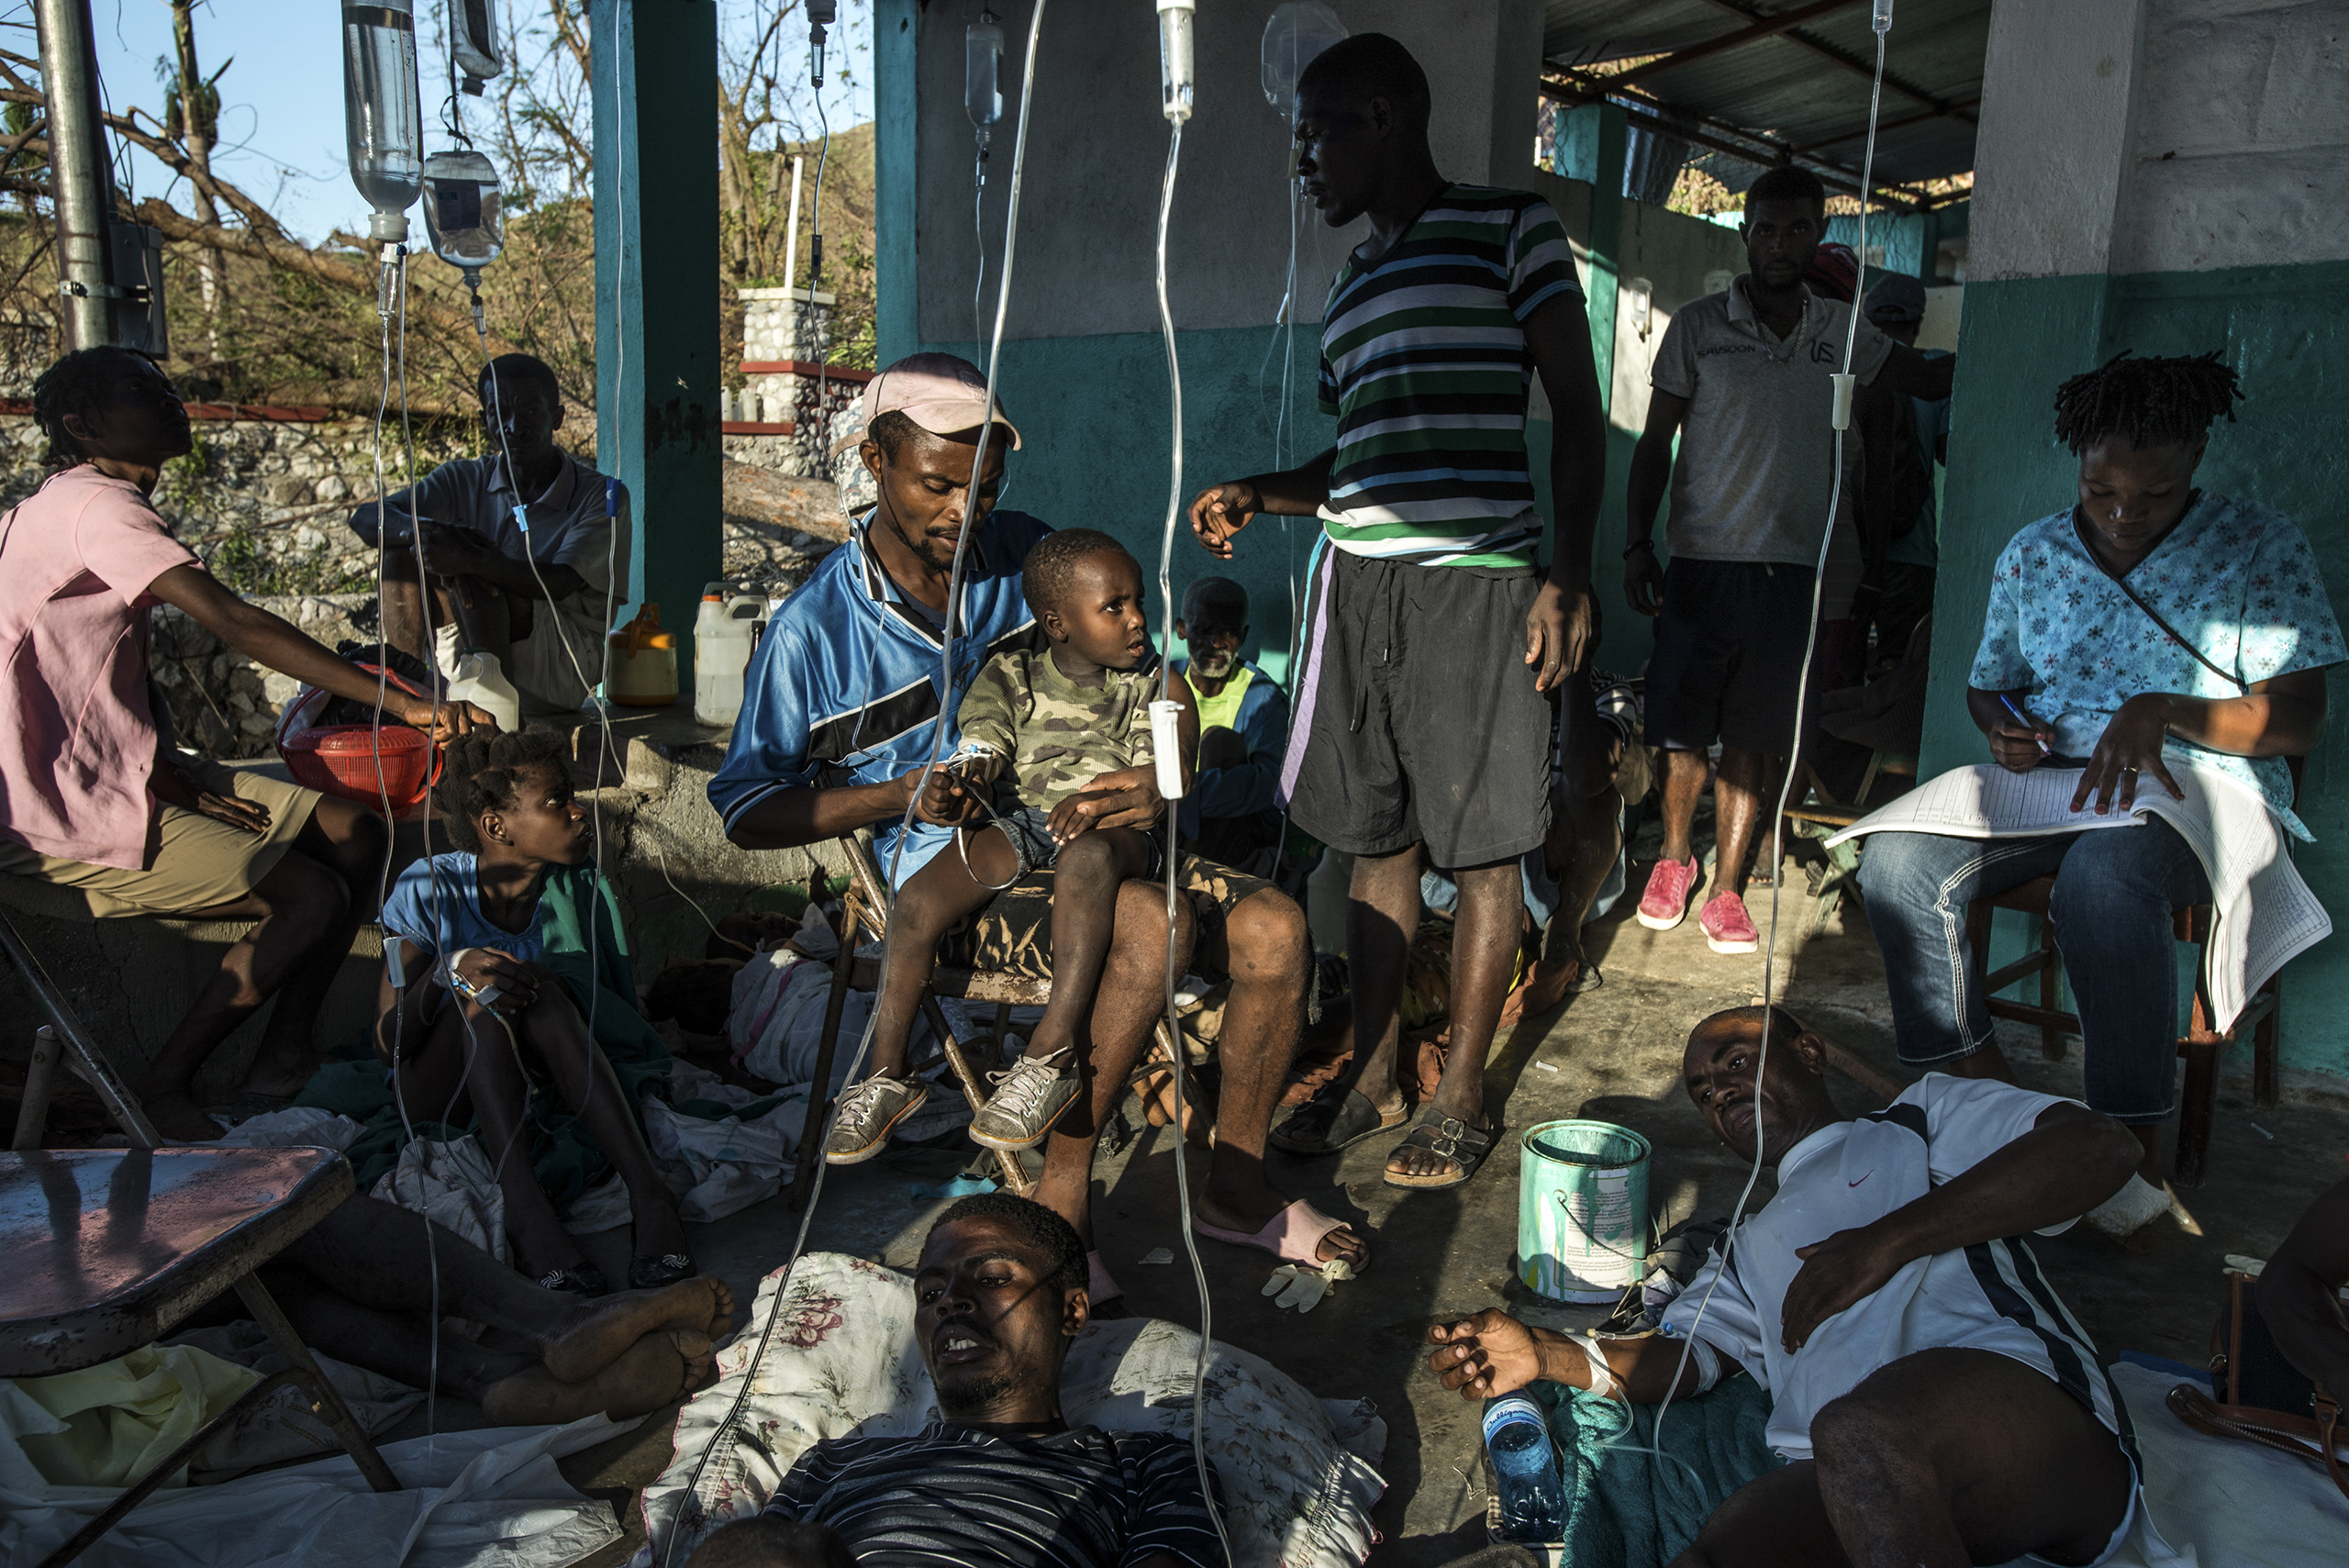 Patients with symptoms of cholera with their families, who risk getting sick caring for their loved ones, at a small clinic in Rendel, Haiti, on Oct. 12, 2016. The town of Rendel and its surroundings, which once sheltered 25,000 people, are the epicenter of a potential Cholera disaster in Haiti made worse by the recent destruction caused by the storm.